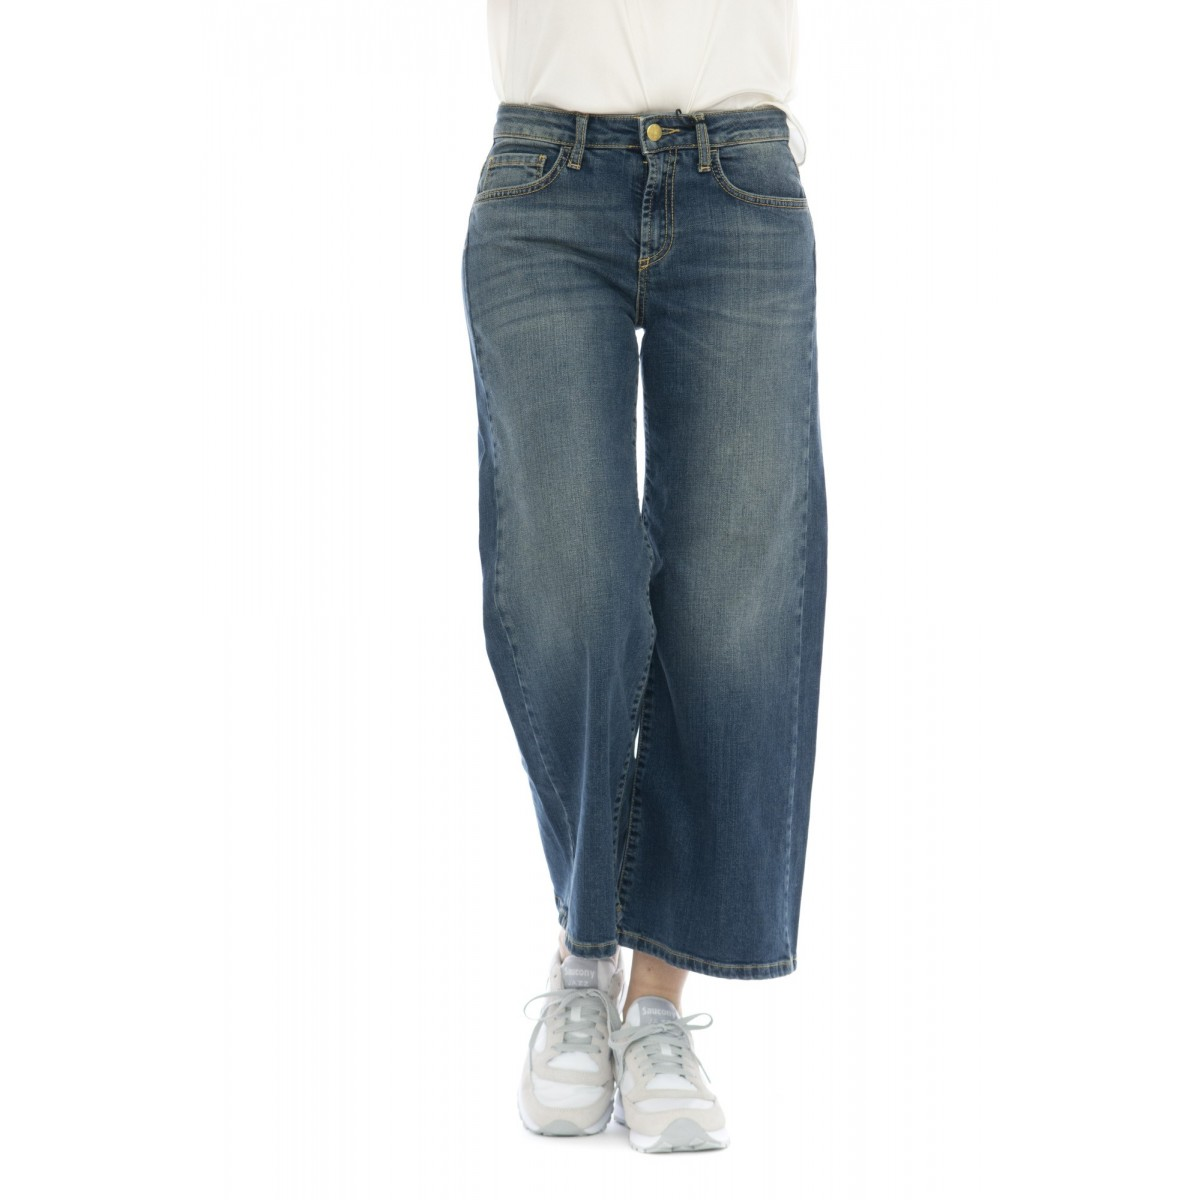 Jeans - Harian vintage jeans